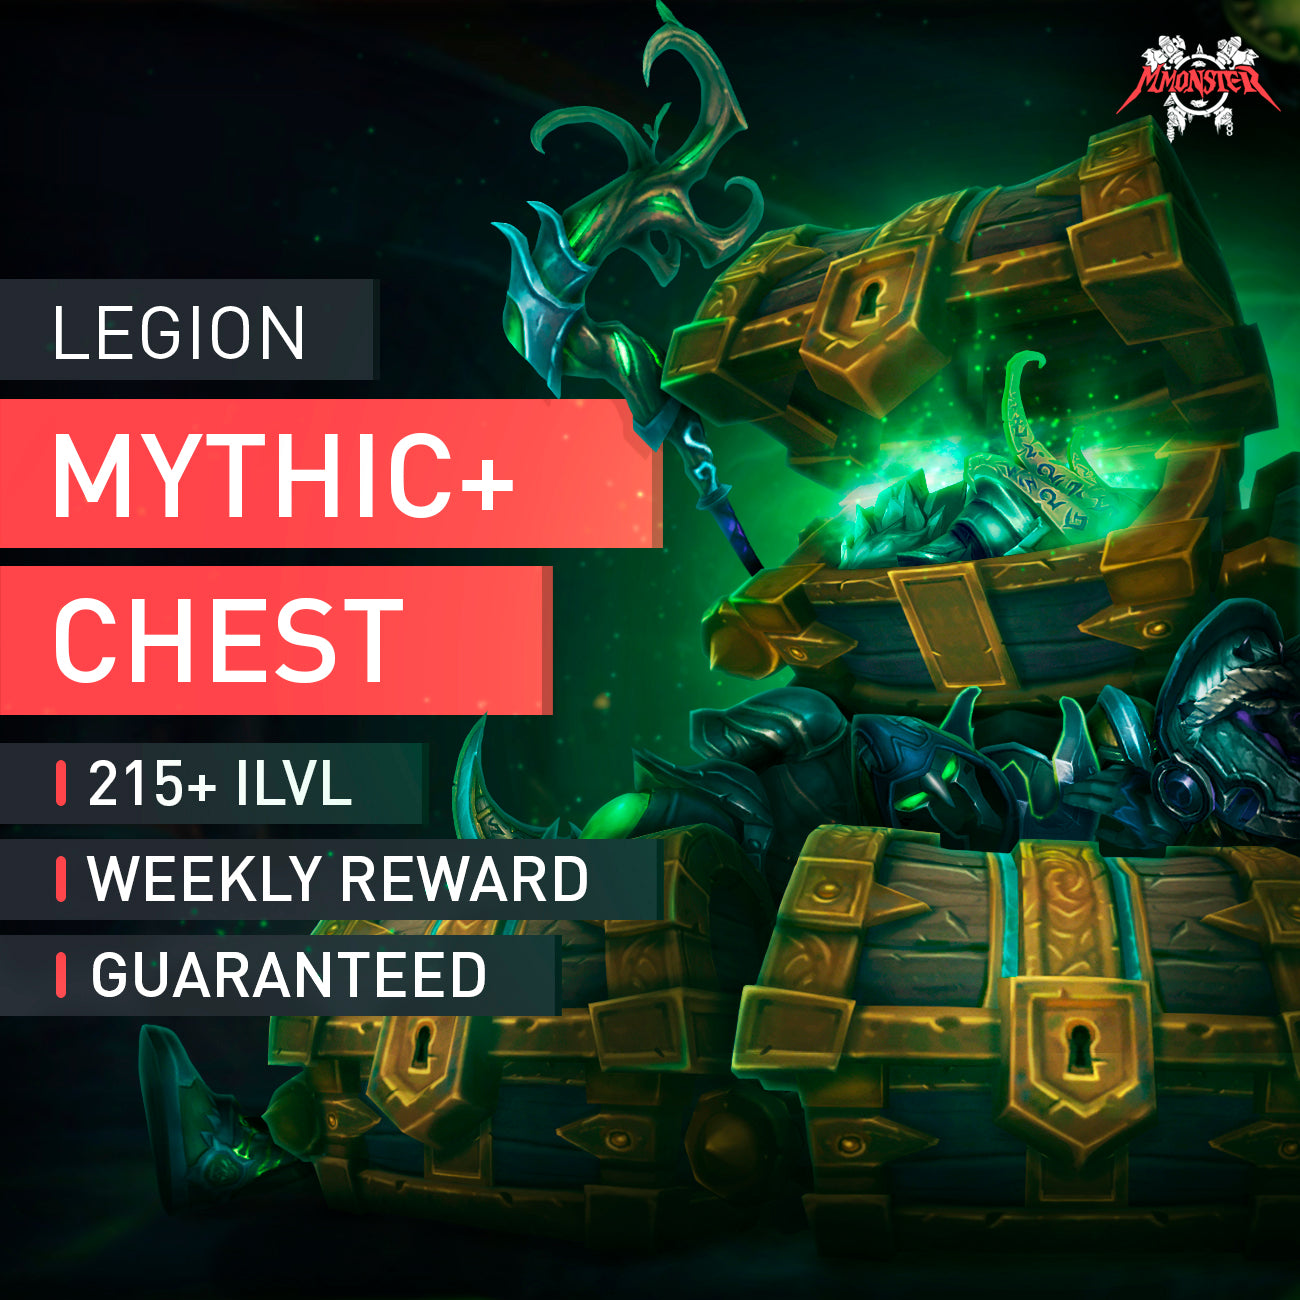 Legion Mythic+ 10 Weekly Chest - MMonster